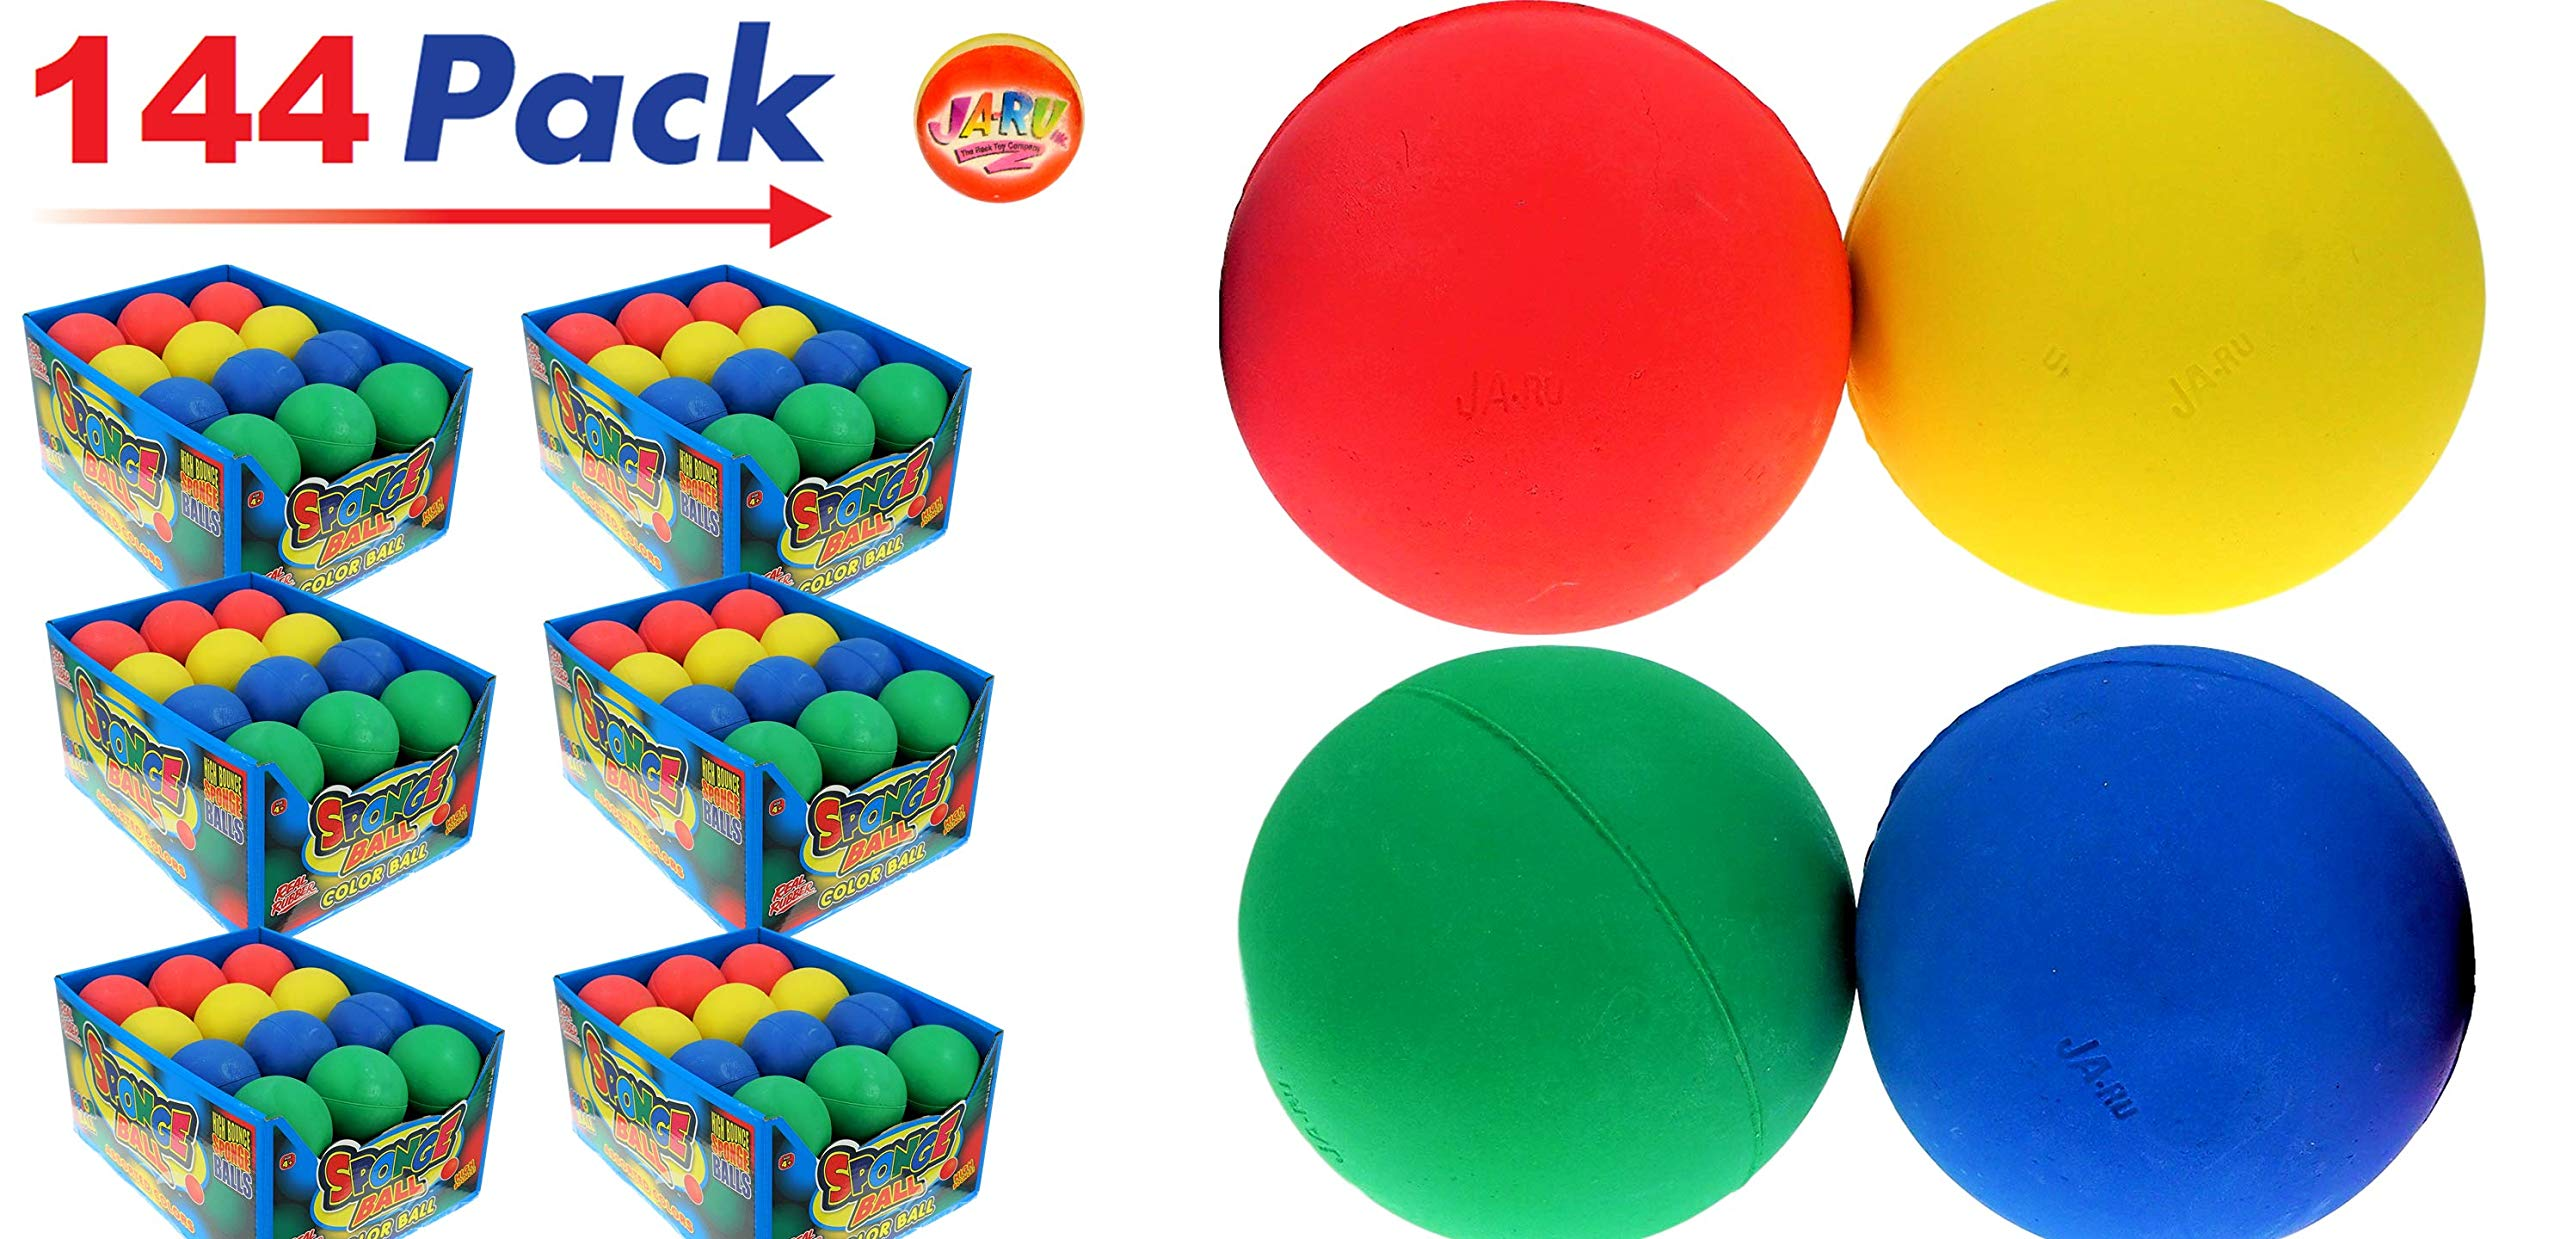 Rubber Bouncy Ball Colors Style (Pack of 144) 2.5'' Hi Bounce Same Like Pinky Balls for Play or Massage Therapy. Plus 1 Small JA-RU Ball. # 978-144p by JaRu